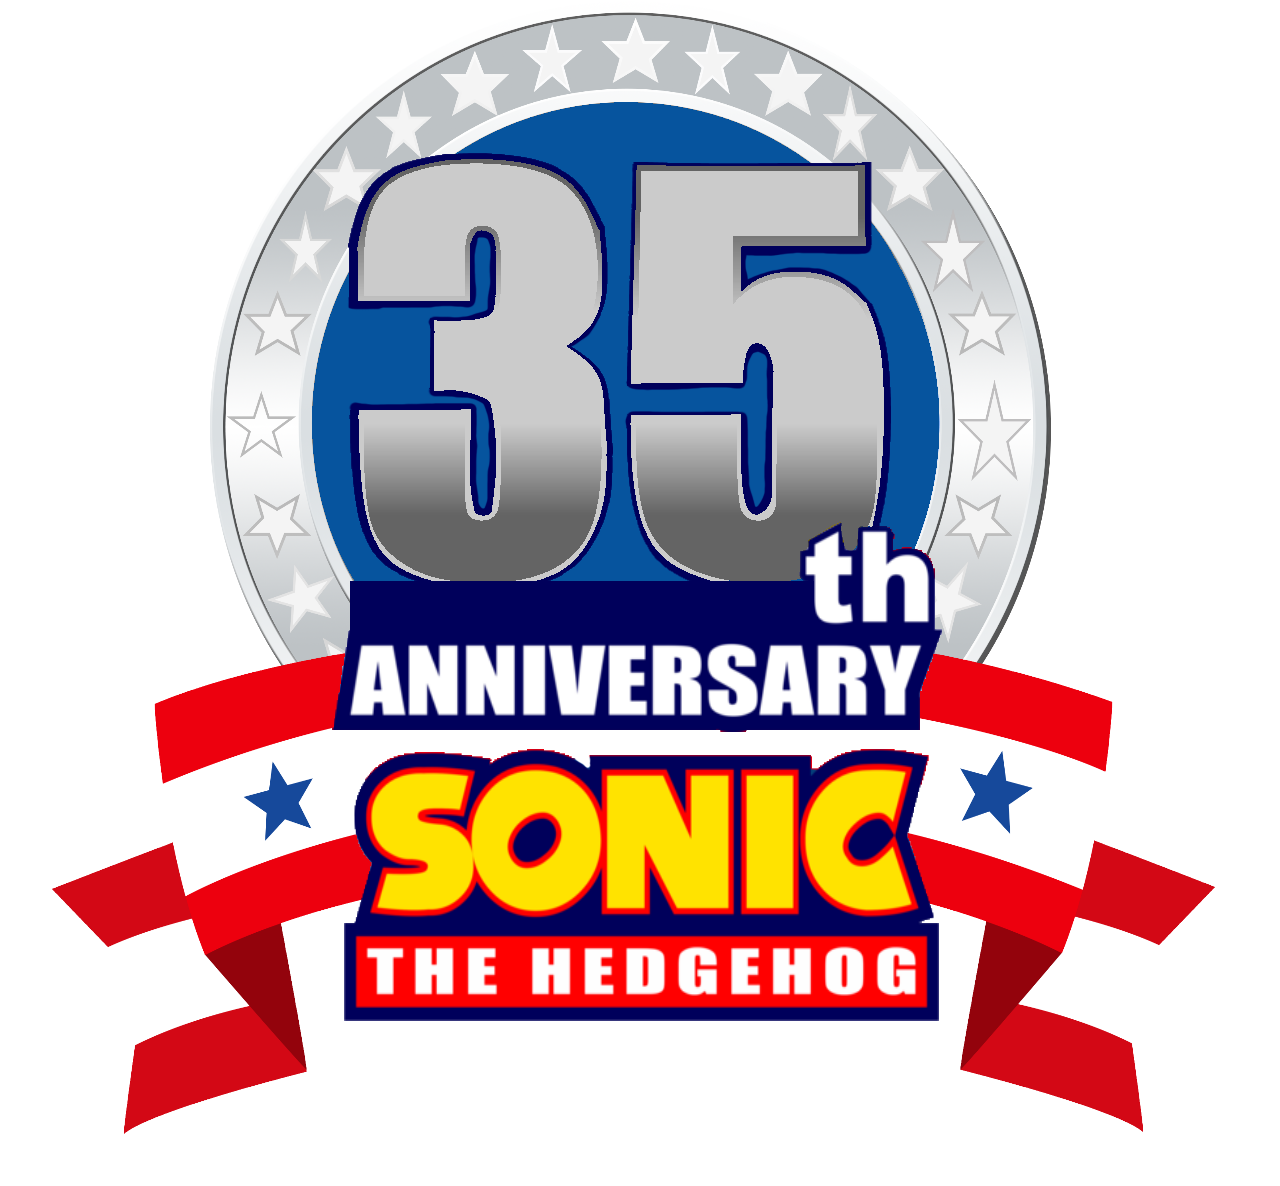 35th Anniversary of Sonic the Hedgehog (2022-2026)